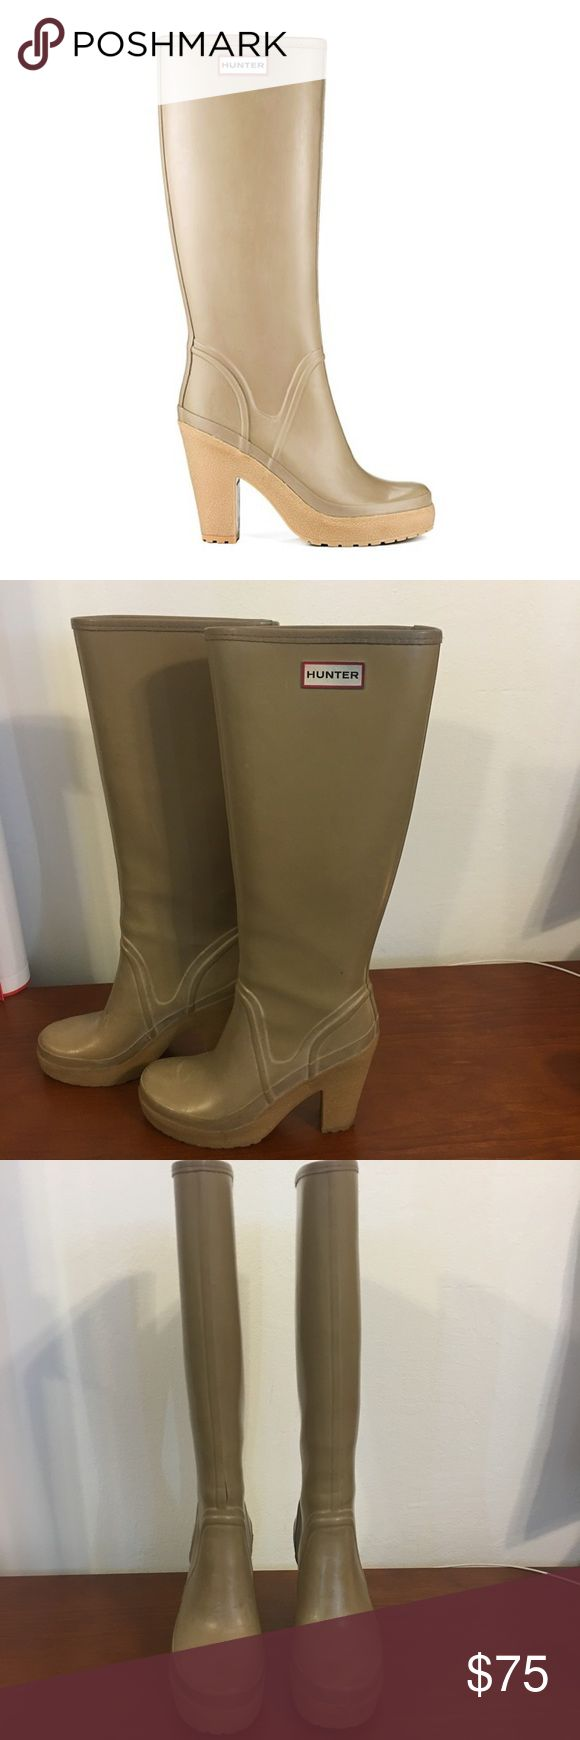 Hunter heeled boots Authentic Hunter heeled boots! A definite must have for any closet! As shown in picture 3&4 these have a minor flaw (tear) in the right boot, but an easy fix! Tear does NOT affect keeping water out. Hunter Boots Shoes Winter & Rain Boots